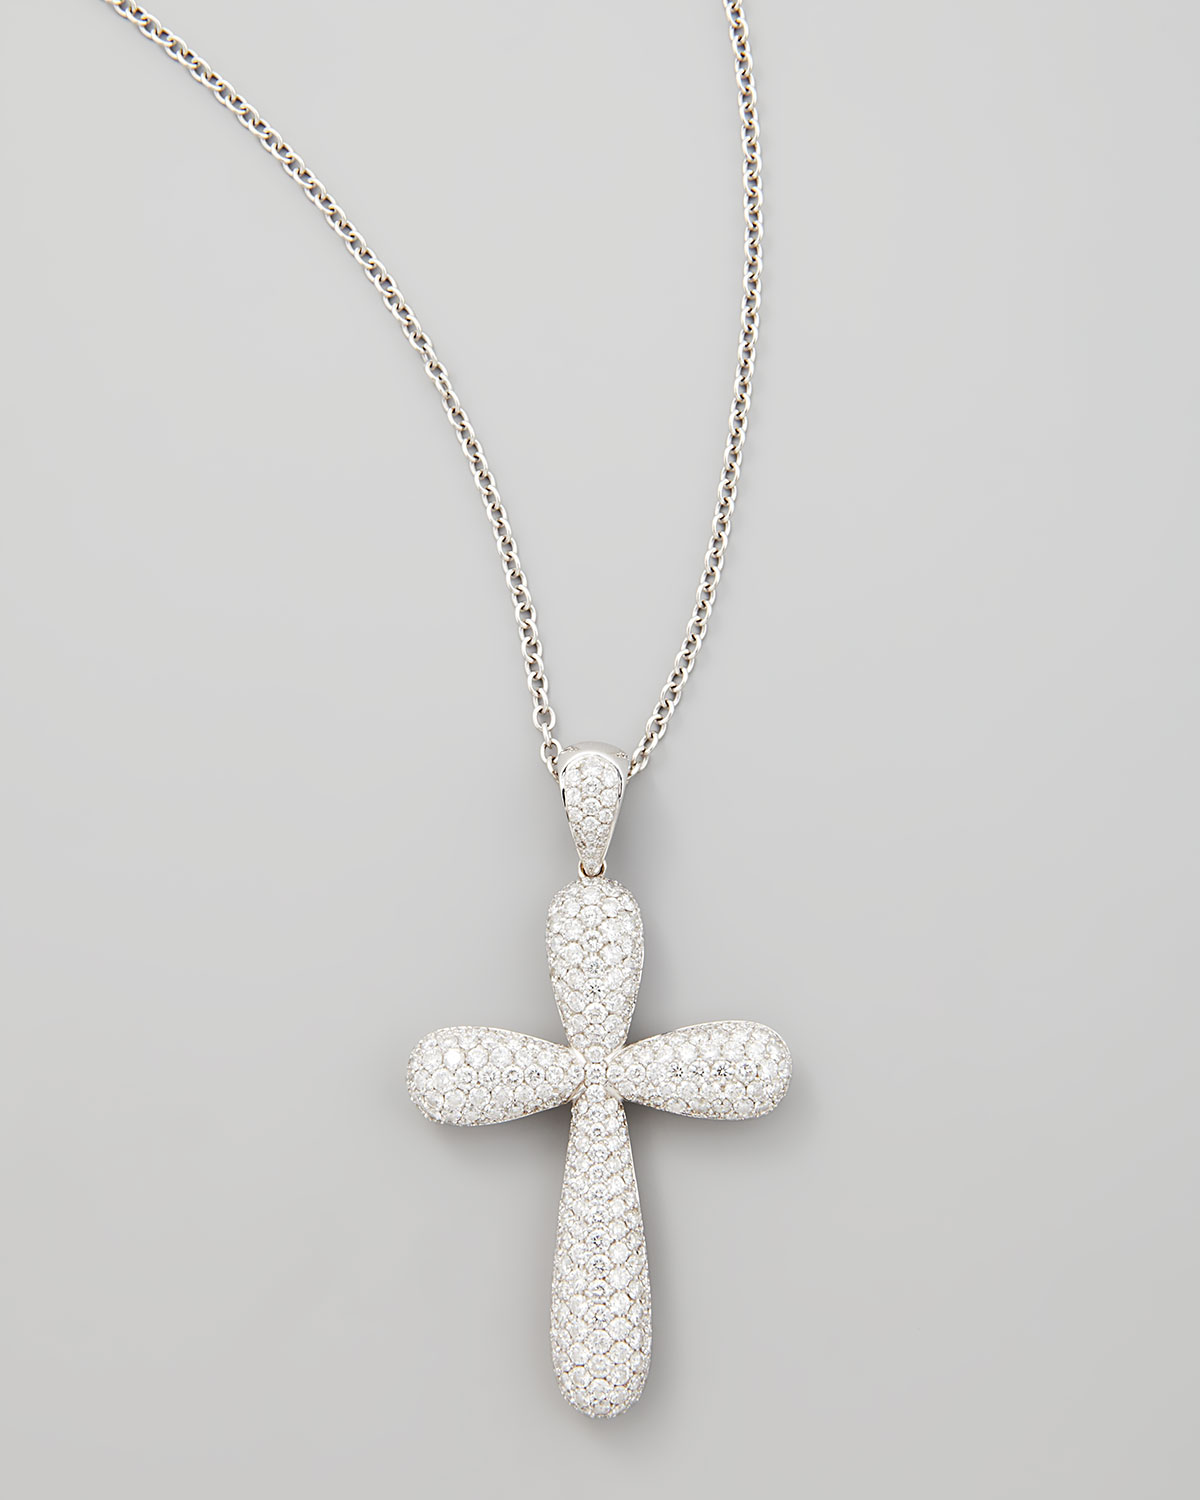 Lyst neiman marcus 18k white gold large pave diamond cross pendant gallery previously sold at neiman marcus womens diamond cross necklaces aloadofball Image collections